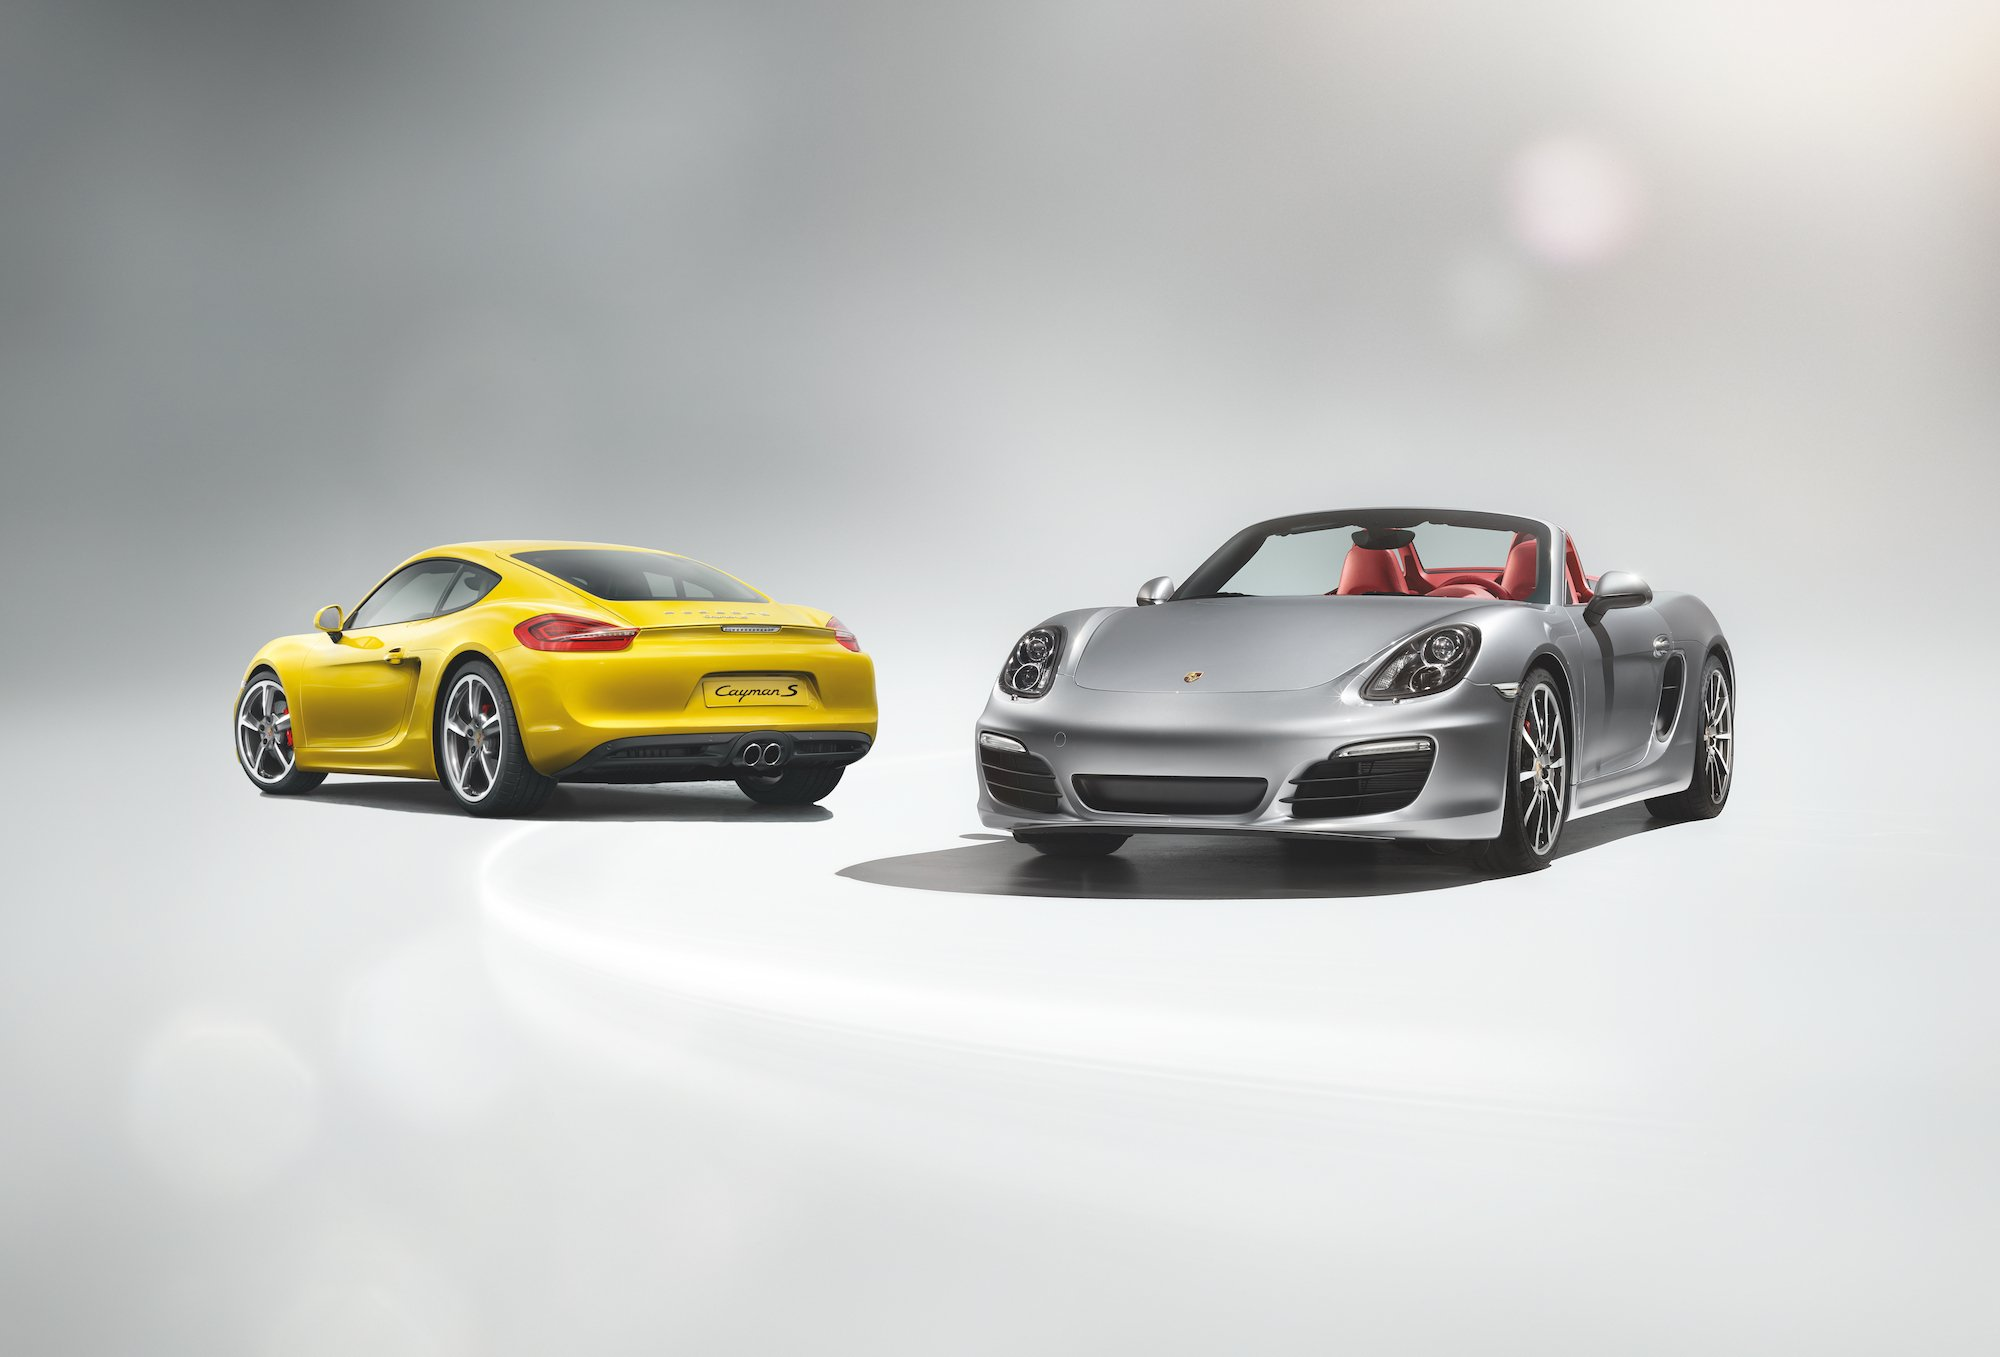 Porsche launches on-demand subscription for its sports cars and SUVs https://t.co/pVXZf0YsUd by @etherington https://t.co/HMkkdMzfFE